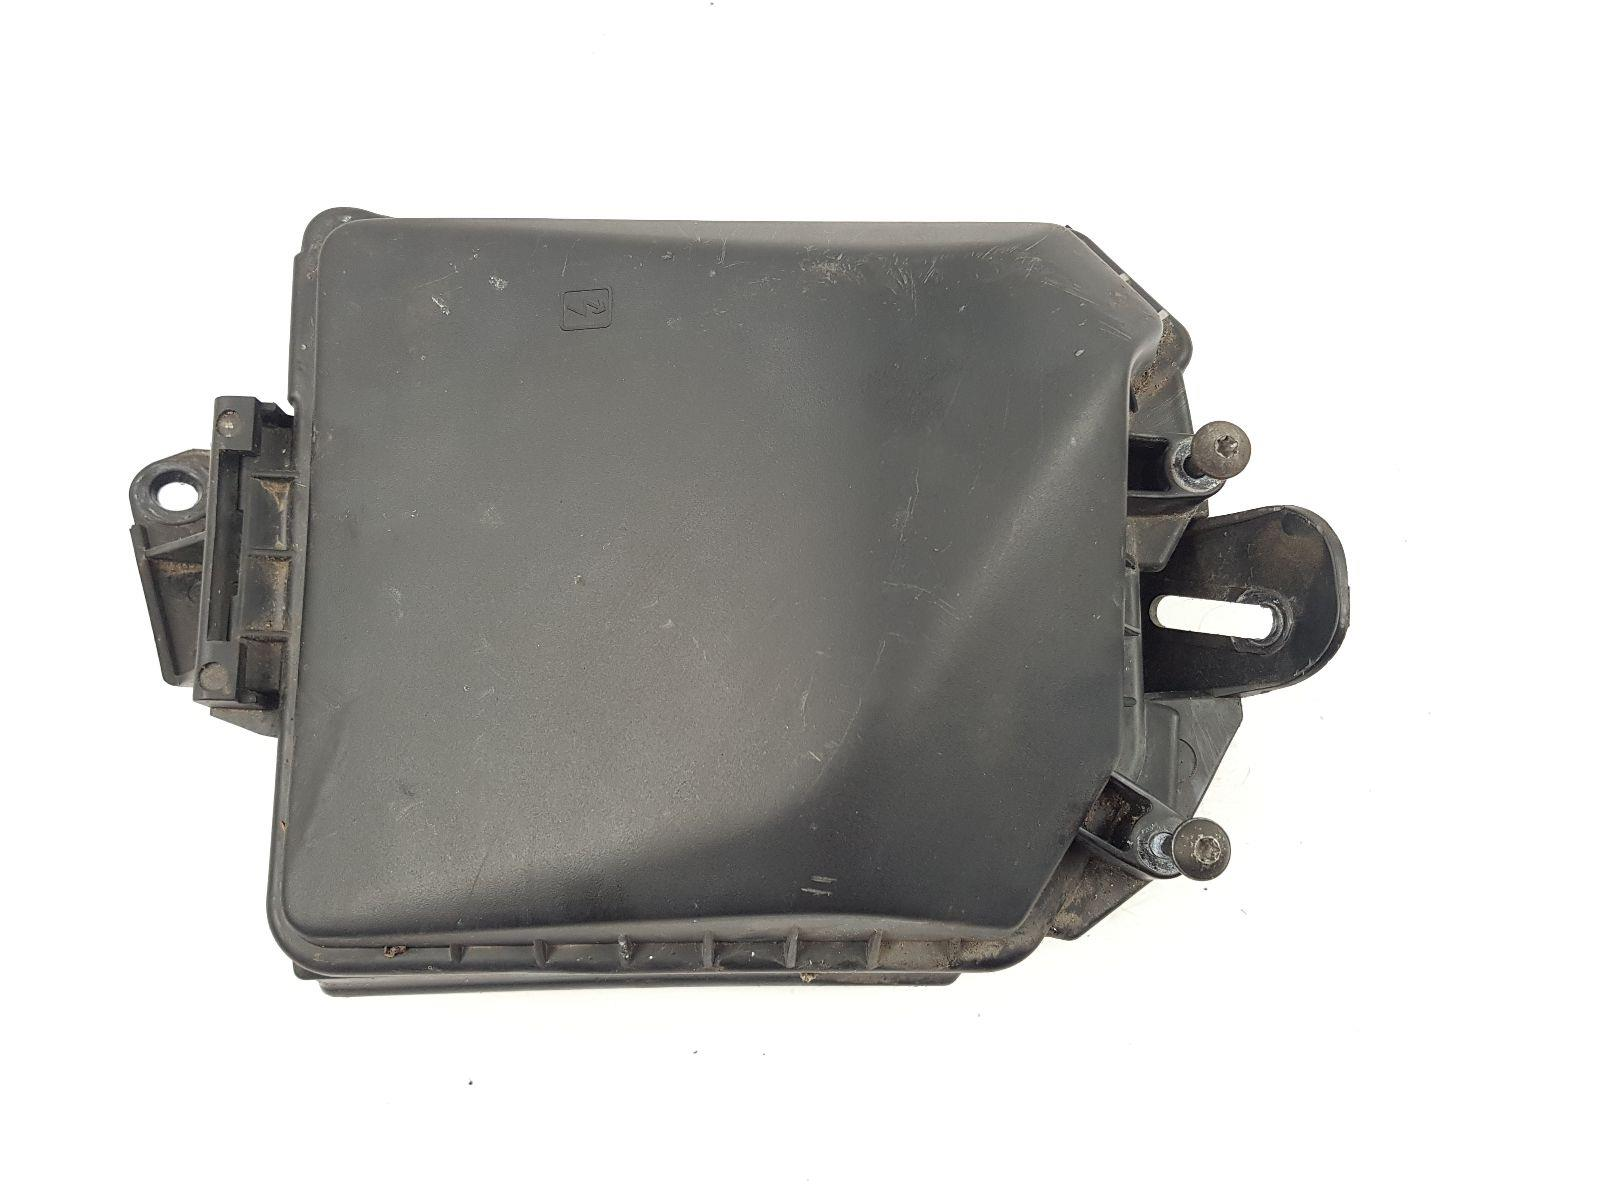 hight resolution of renault clio 2006 to 2009 fuse box petrol manual for sale from2006 2009 mk3